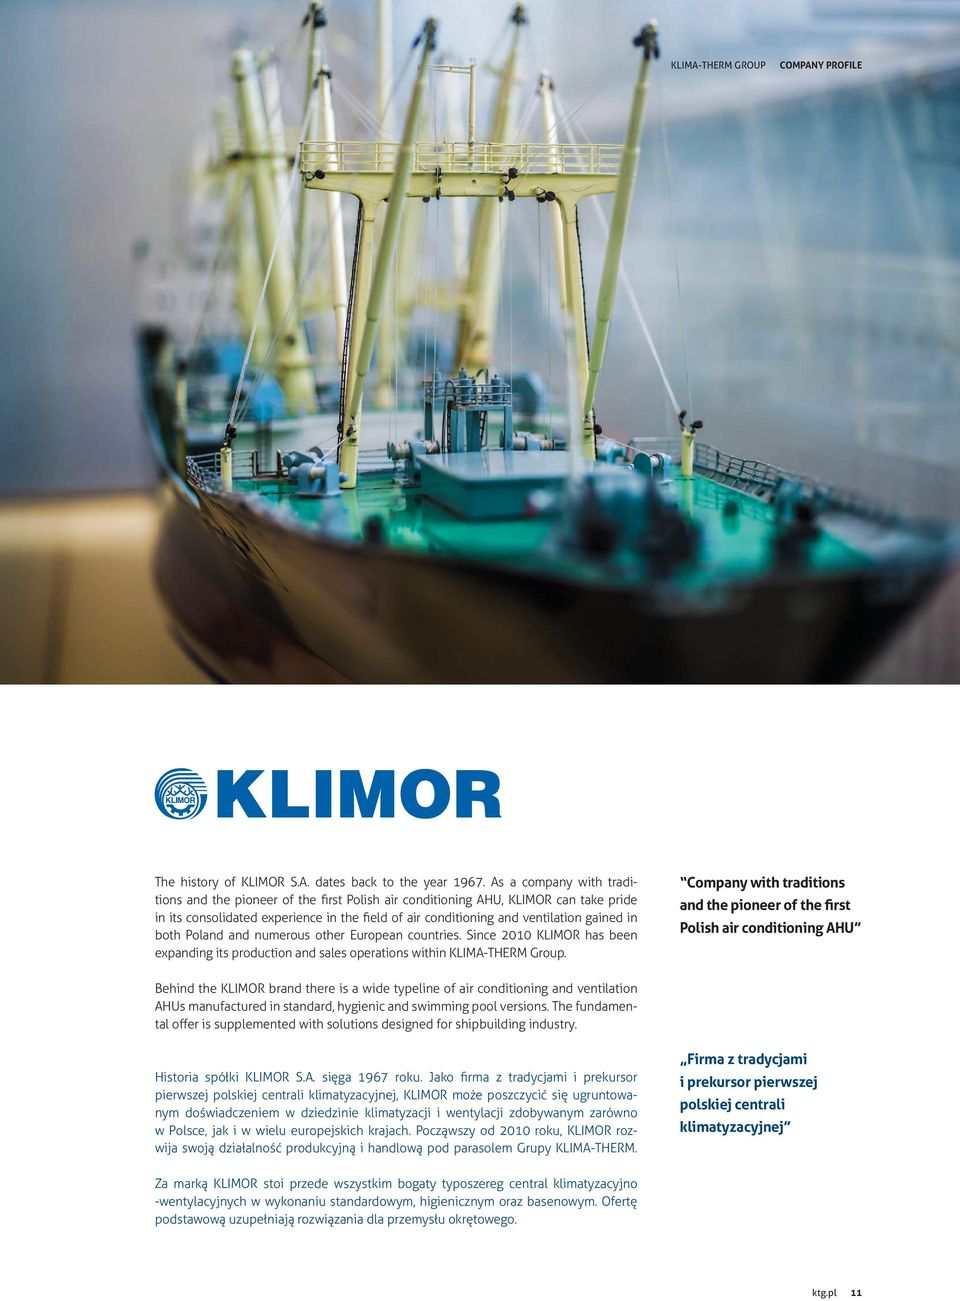 both Poland and numerous other European countries. Since 2010 KLIMOR has been expanding its production and sales operations within KLIMA-THERM Group.